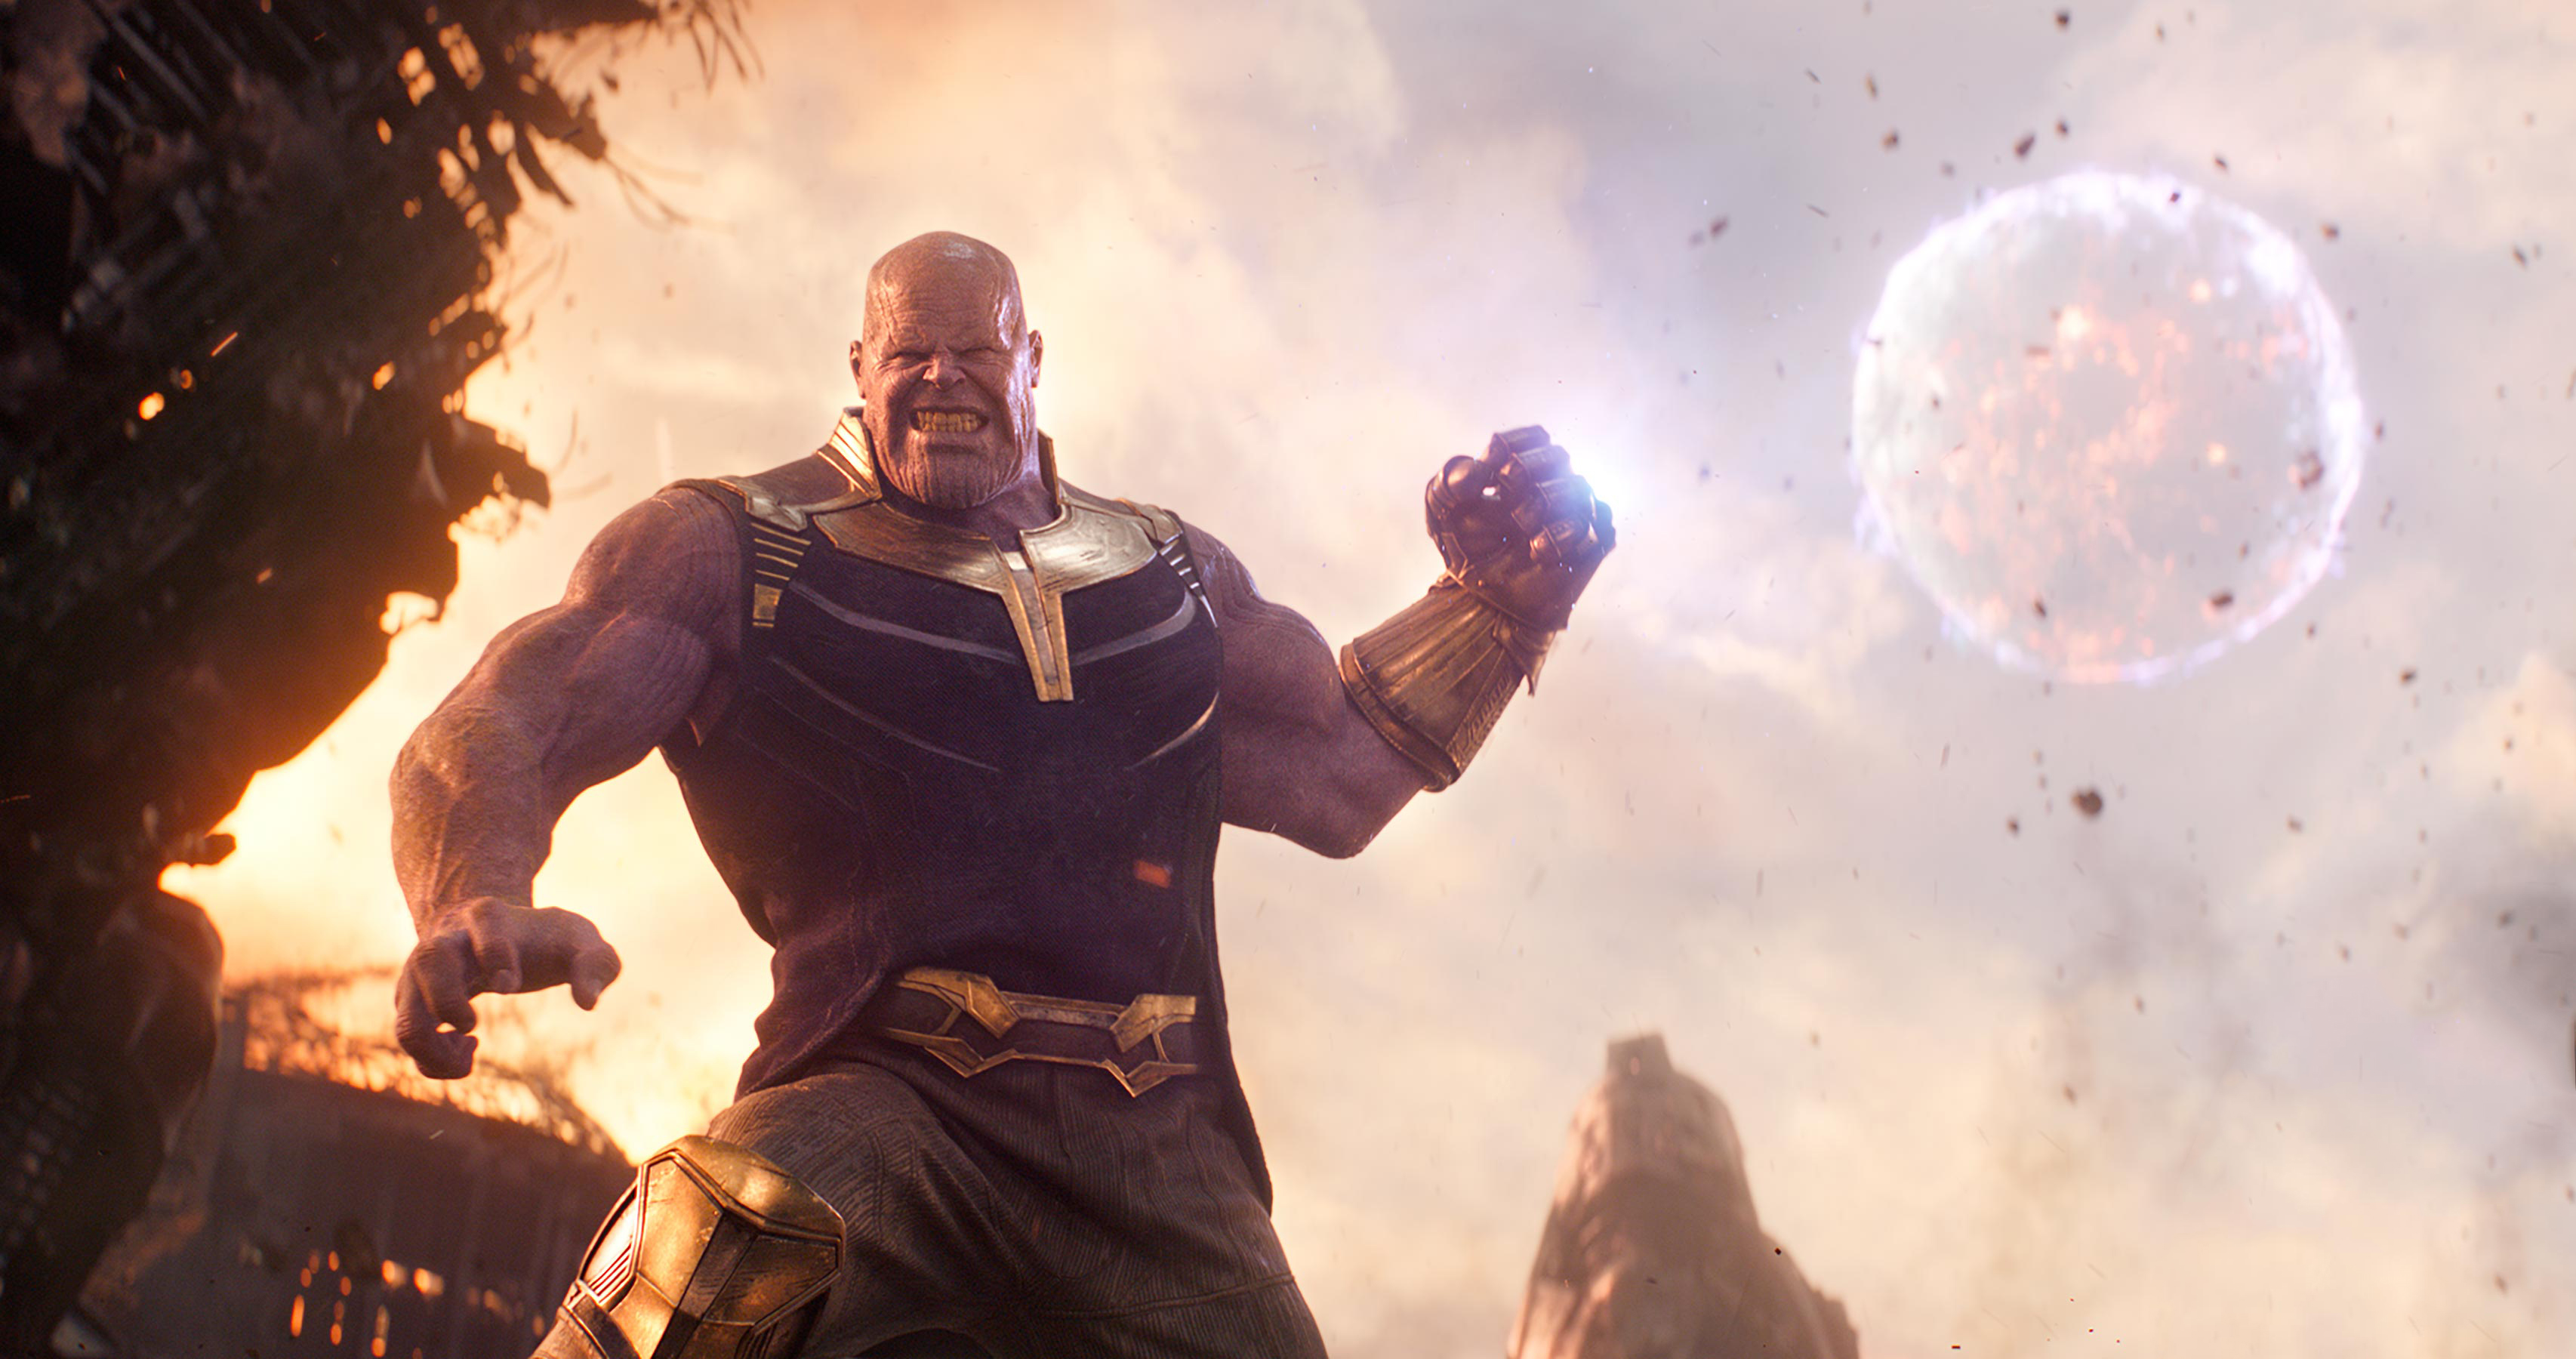 thanos in avengers infinity war 2018, hd movies, 4k wallpapers